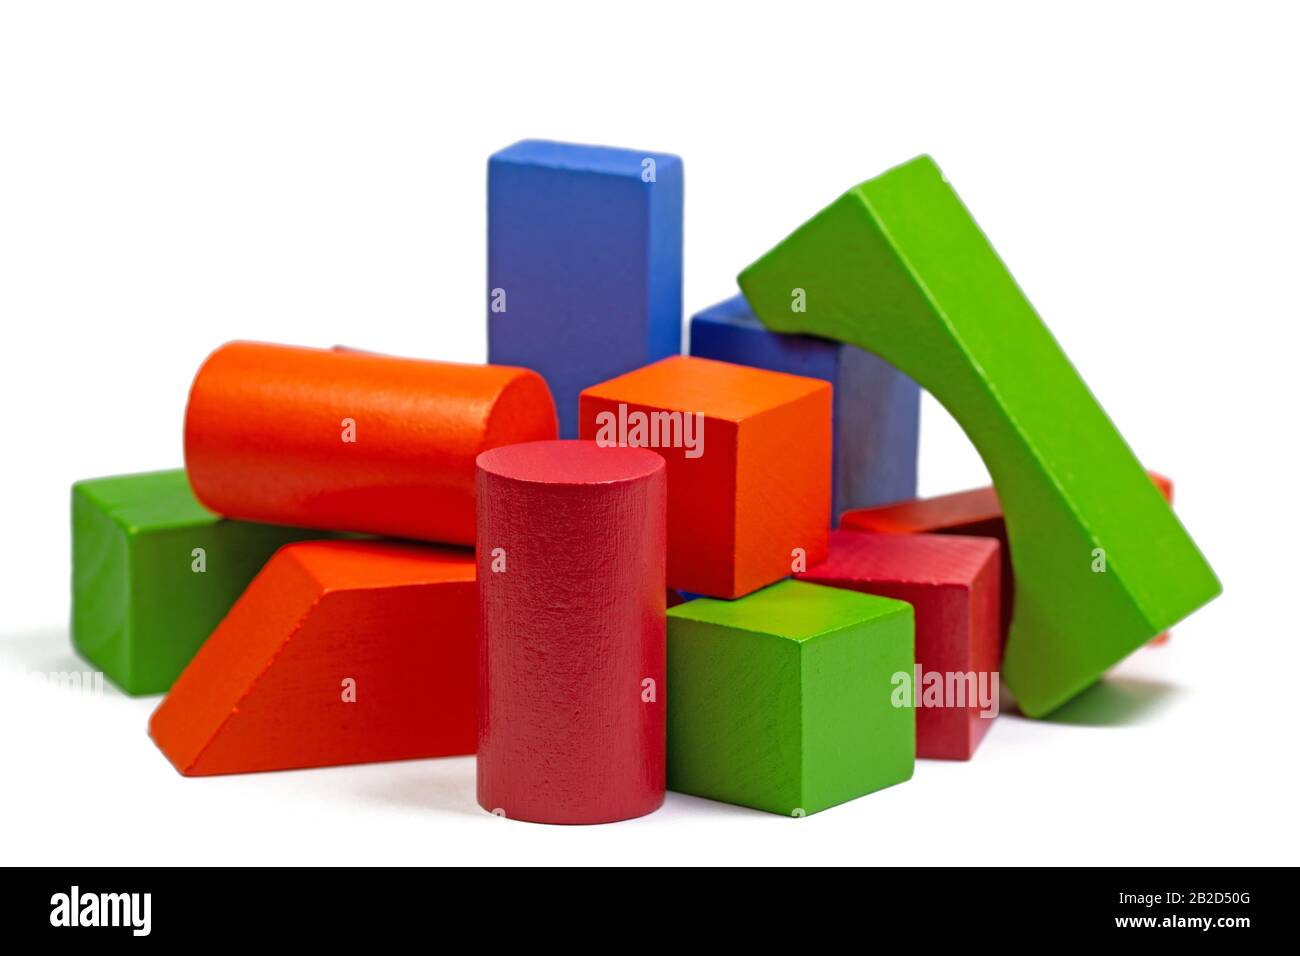 Colorful wooden toy blocks against white background Stock Photo